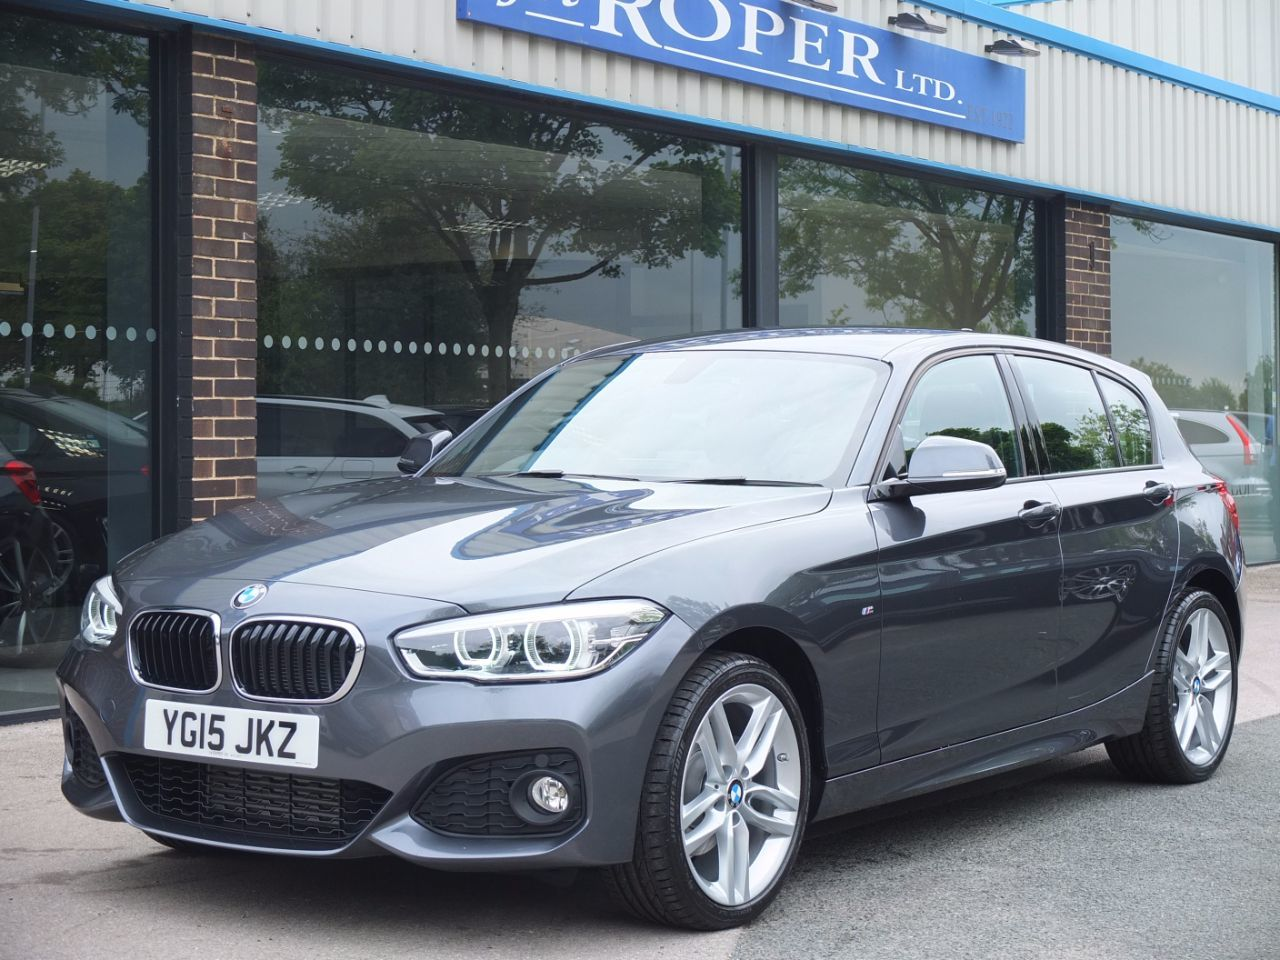 BMW 1 Series 2.0 120d xDrive M Sport 5dr Auto New Model +Spec Hatchback Diesel Mineral Grey MetallicBMW 1 Series 2.0 120d xDrive M Sport 5dr Auto New Model +Spec Hatchback Diesel Mineral Grey Metallic at fa Roper Ltd Bradford